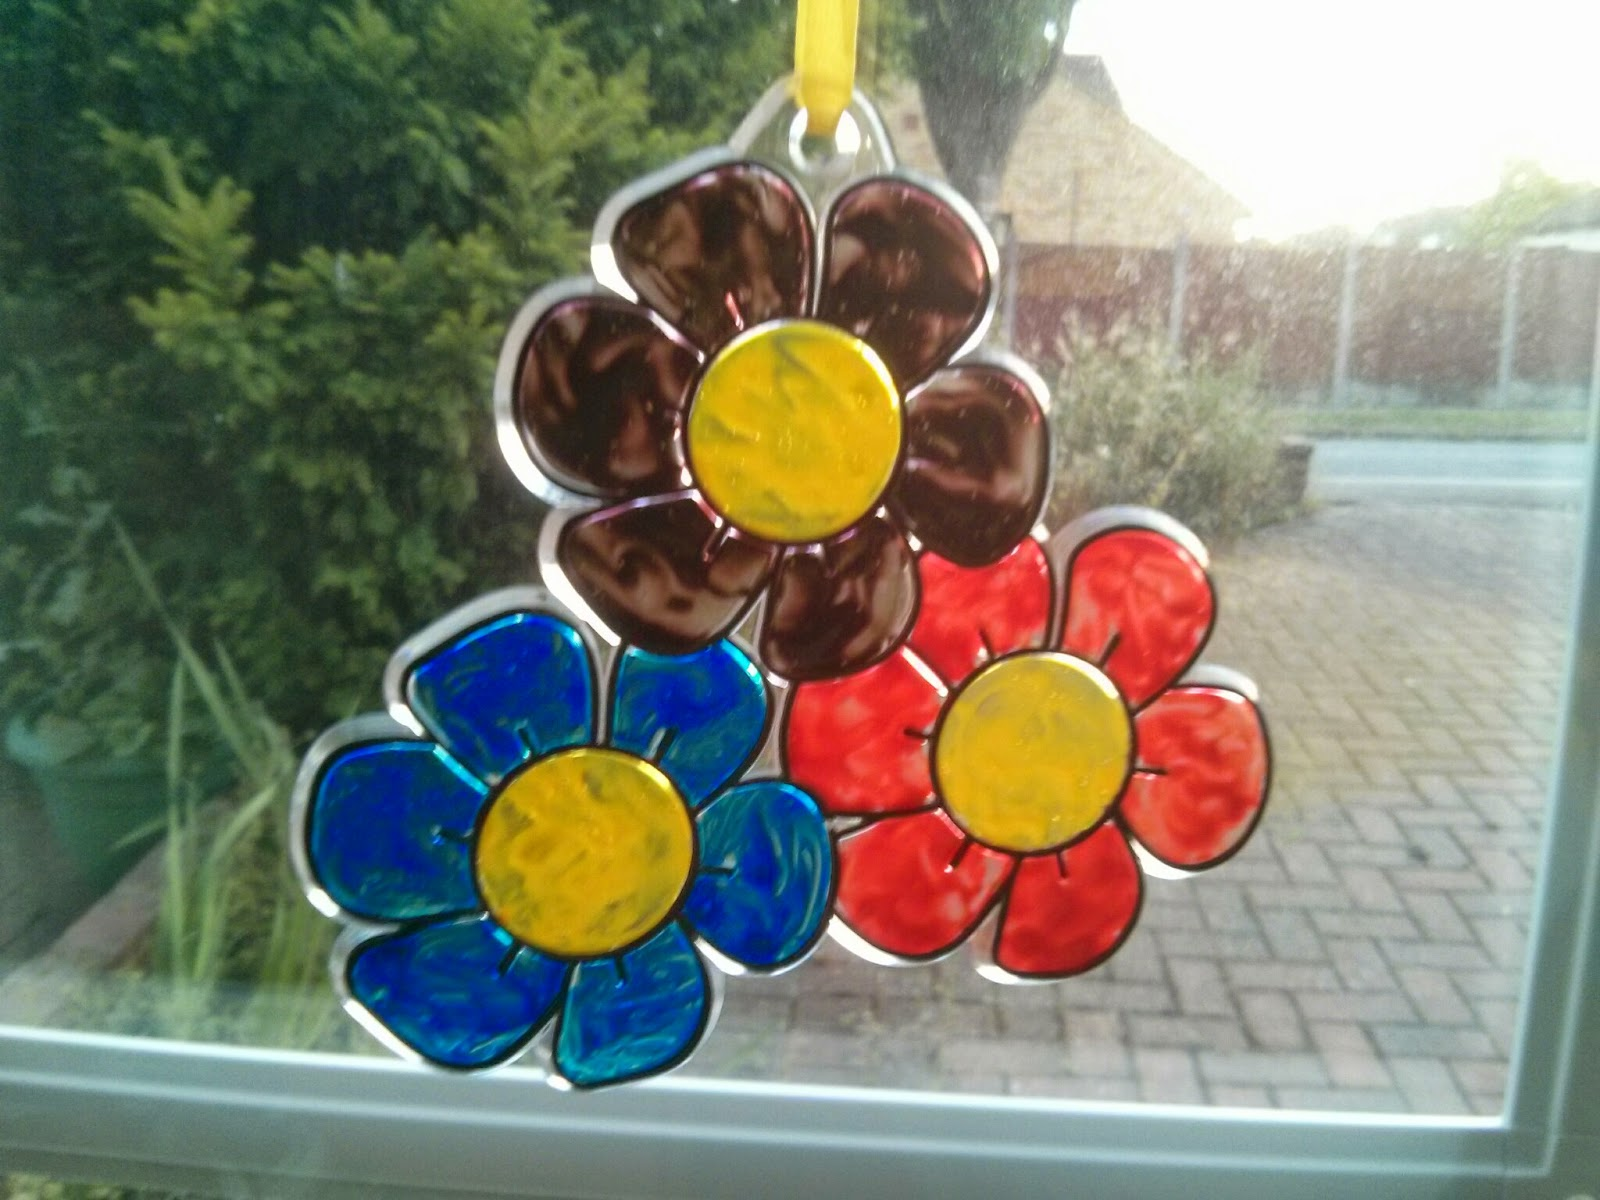 Suncatchers in the window